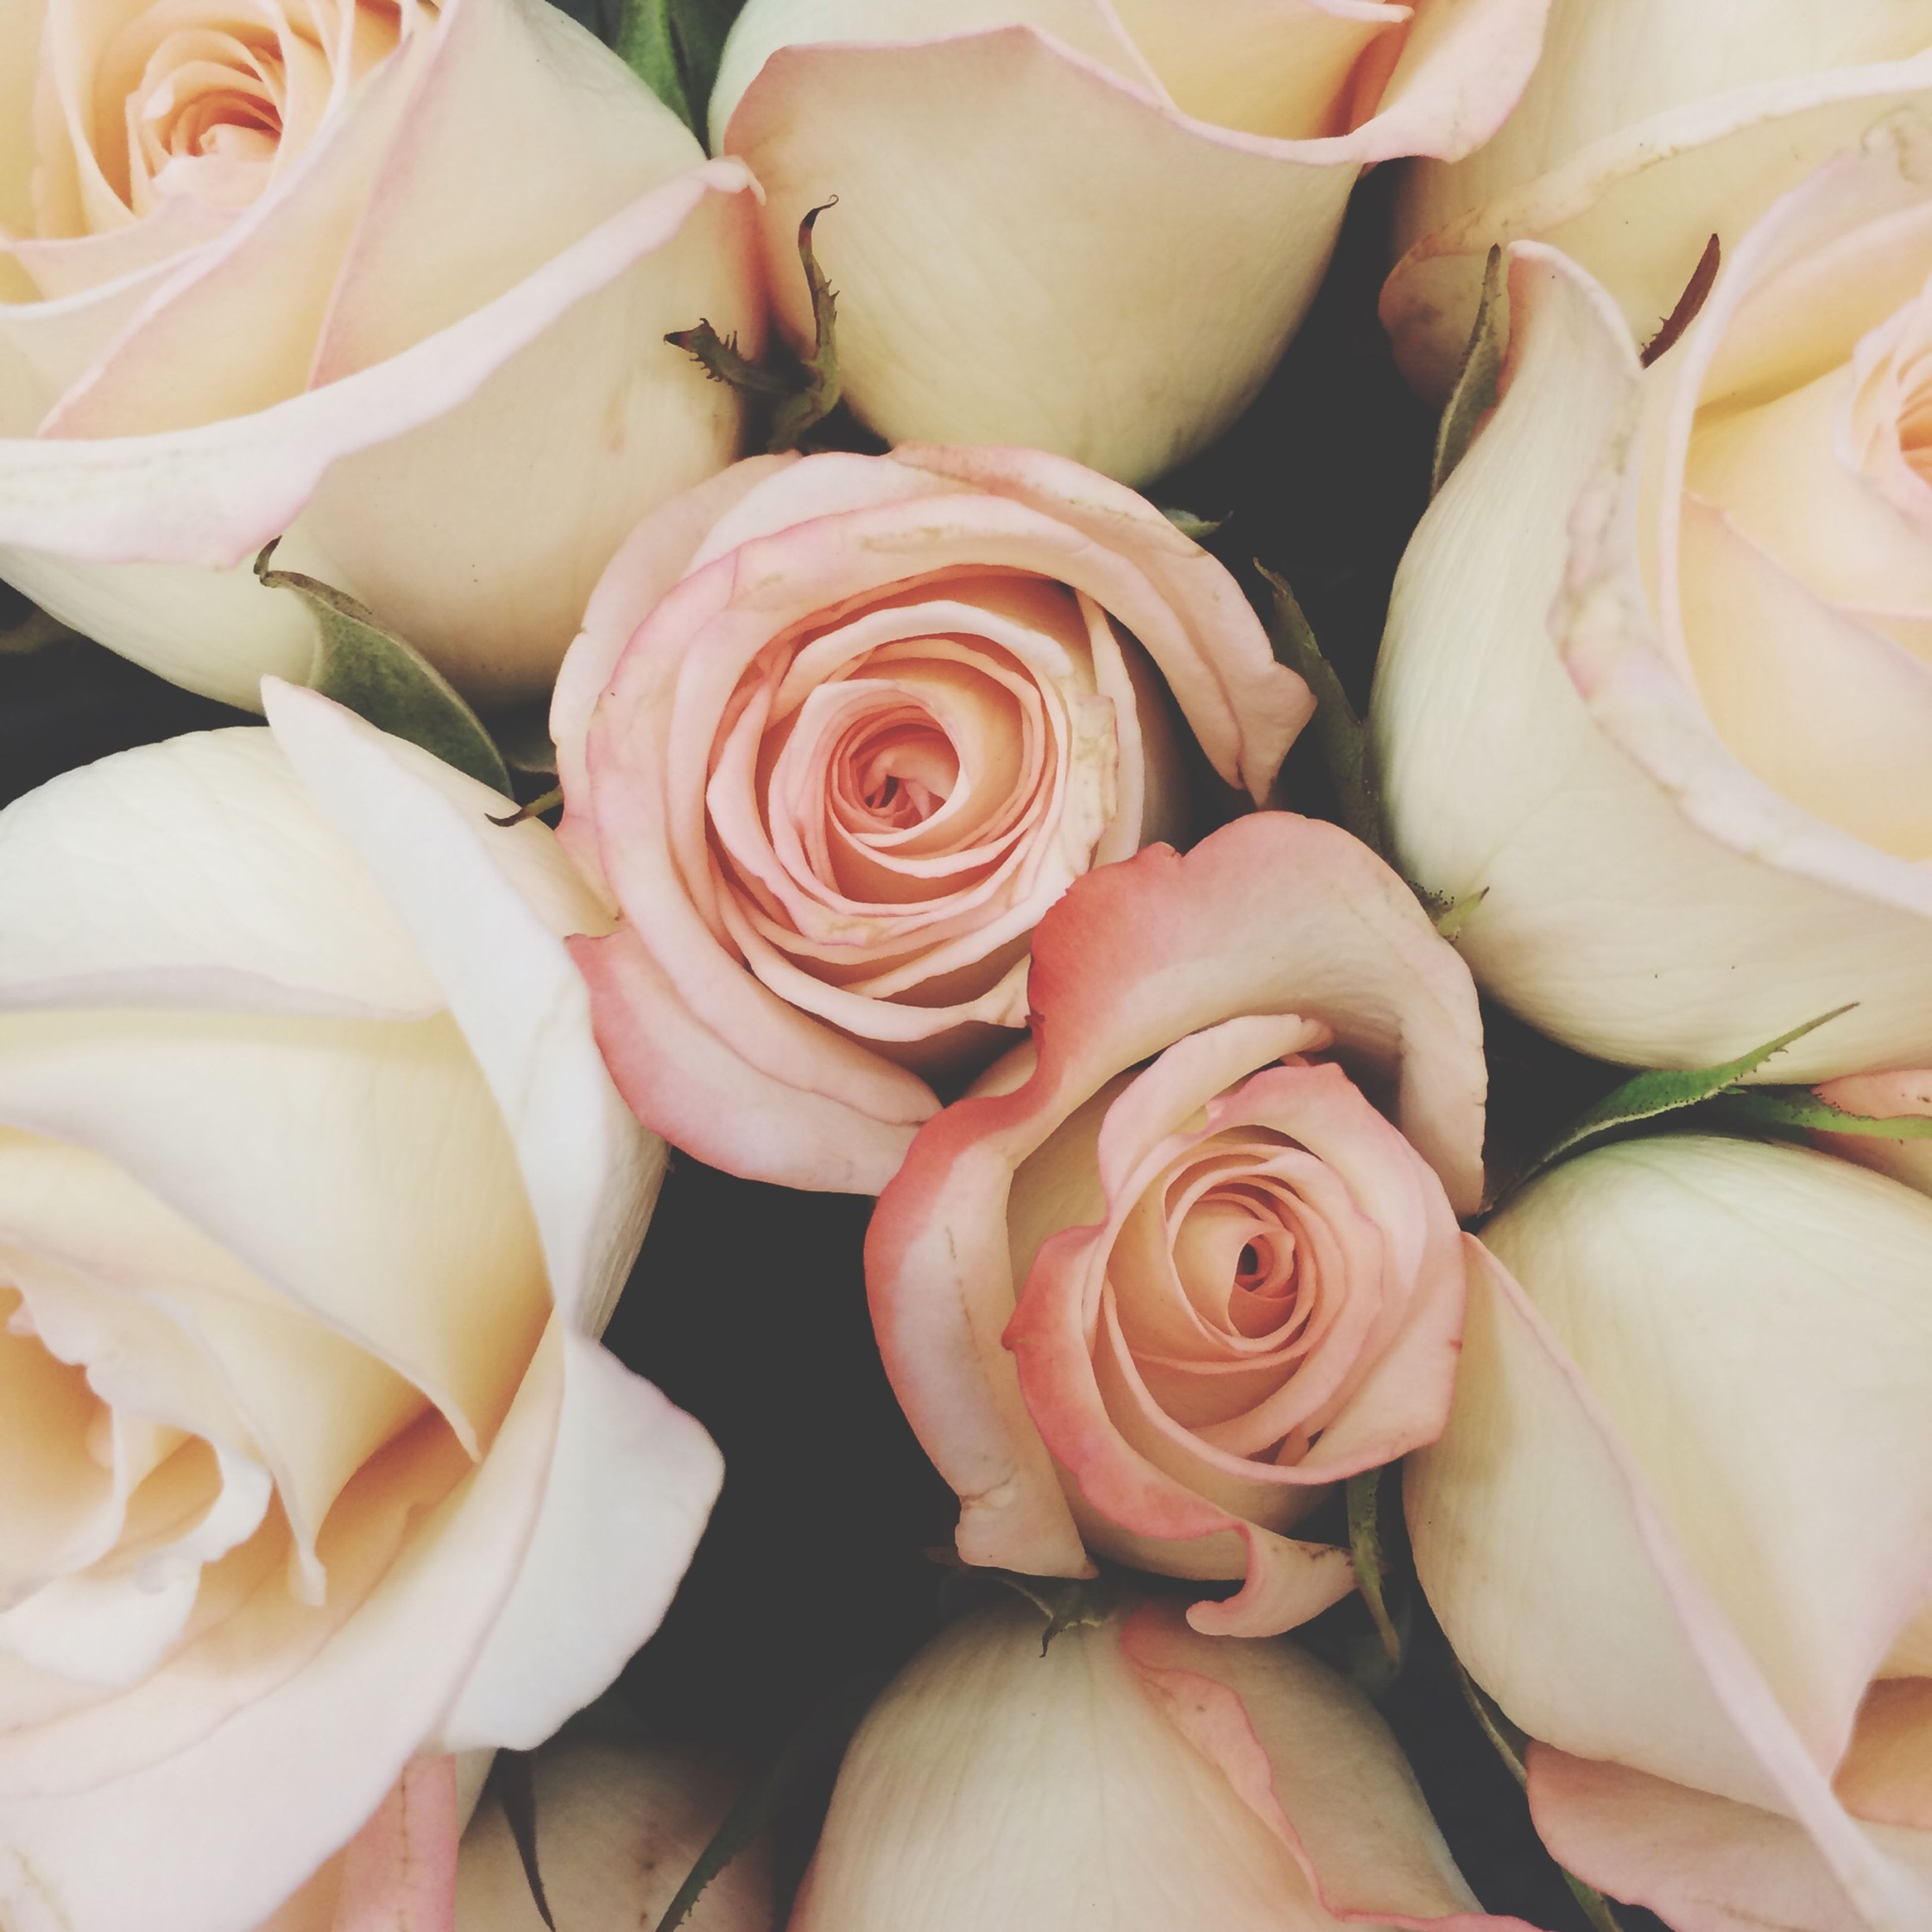 flower, freshness, petal, rose - flower, fragility, flower head, full frame, beauty in nature, backgrounds, rose, pink color, close-up, nature, growth, indoors, high angle view, bouquet, natural pattern, softness, blooming